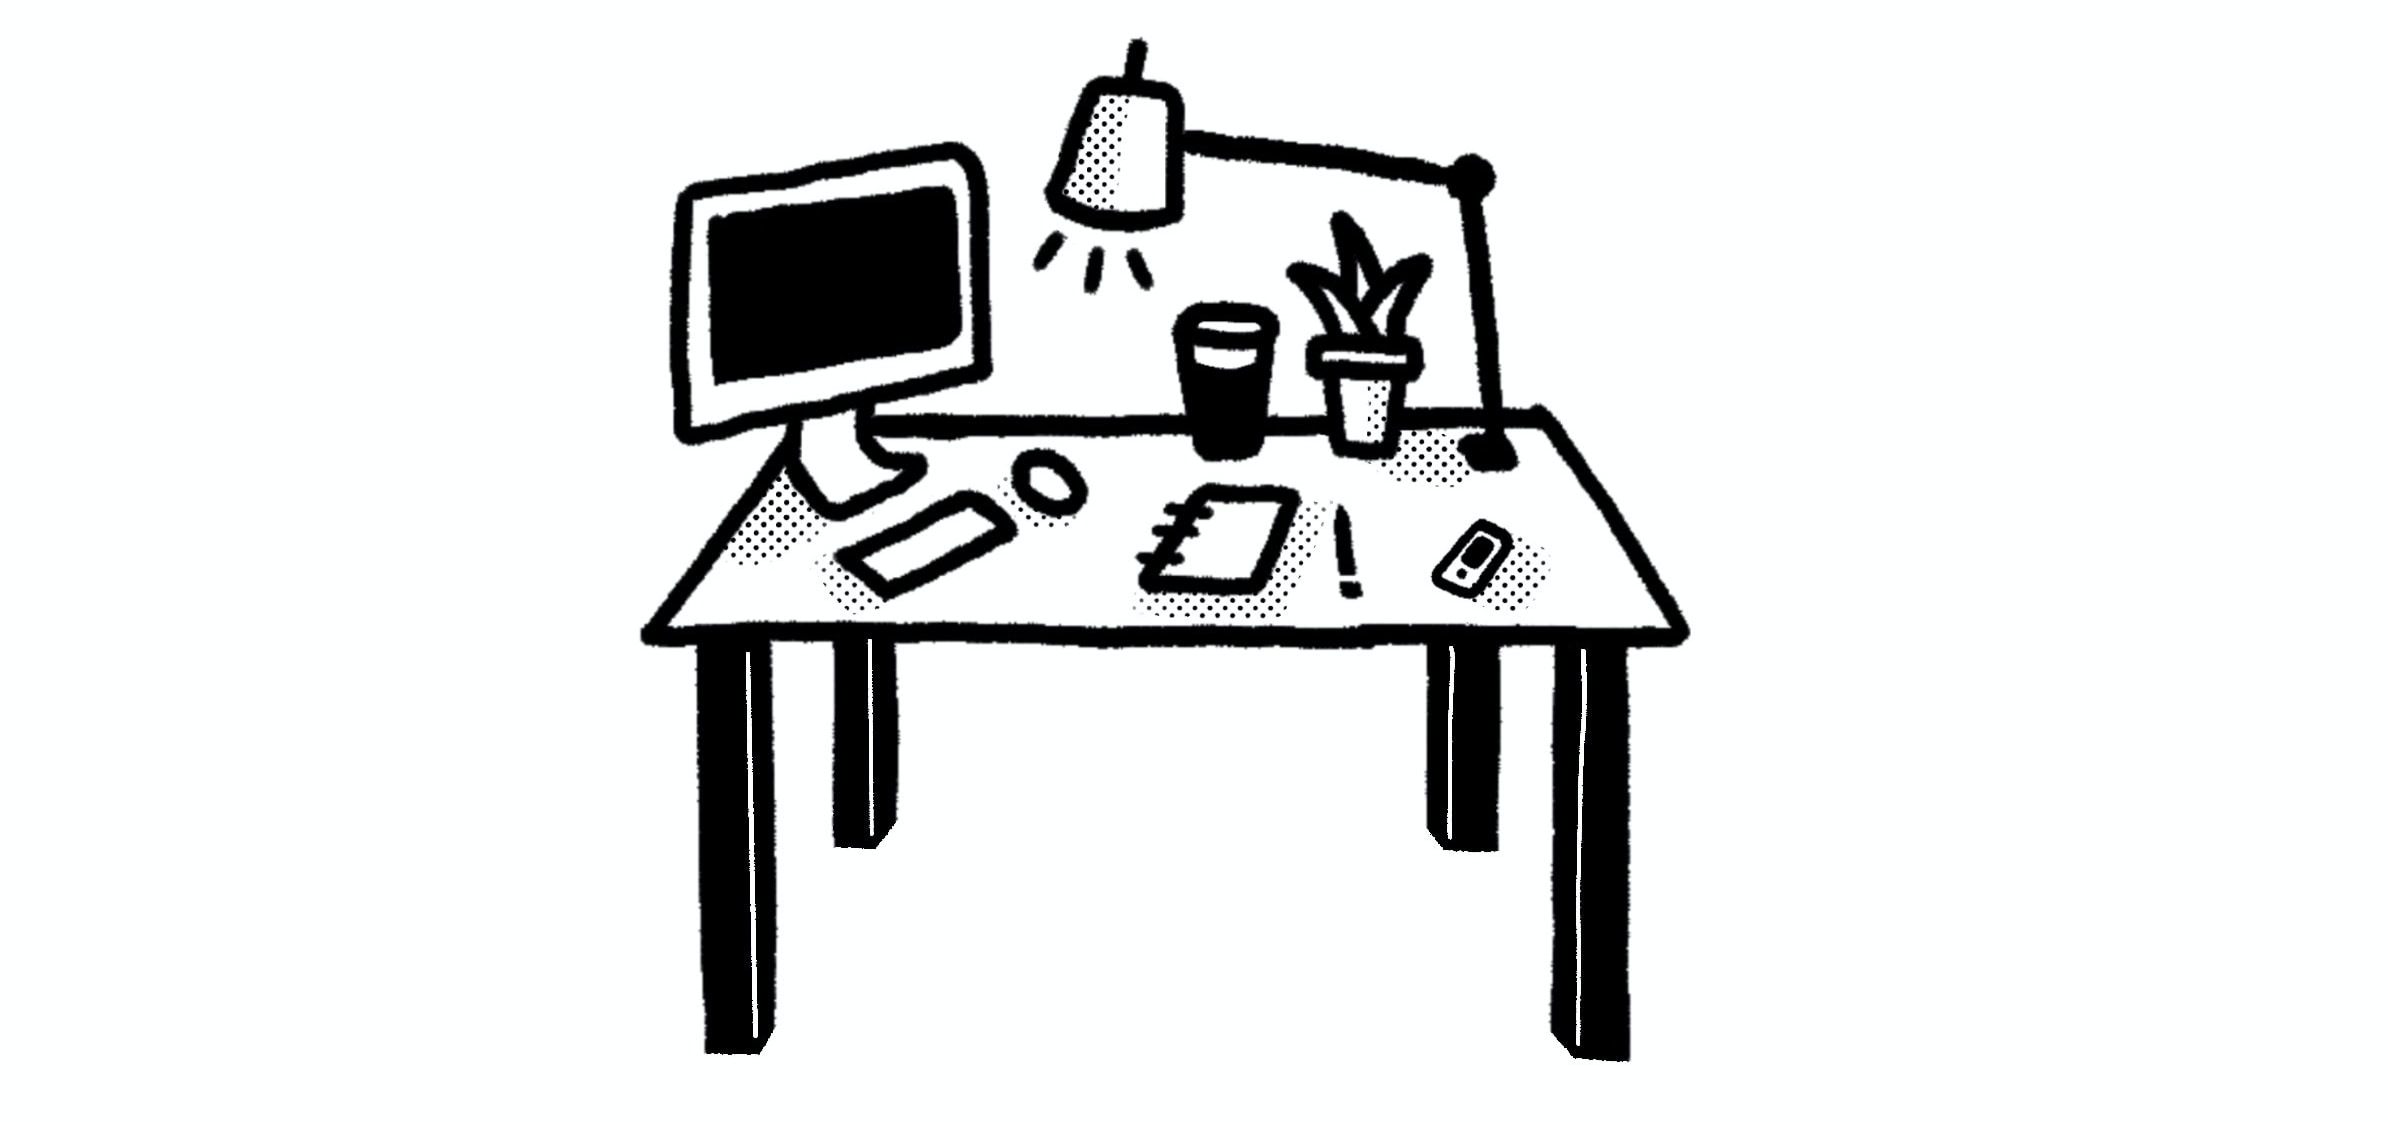 A doodle of what I assume is Dustin Tinney's desk by David Rollyn